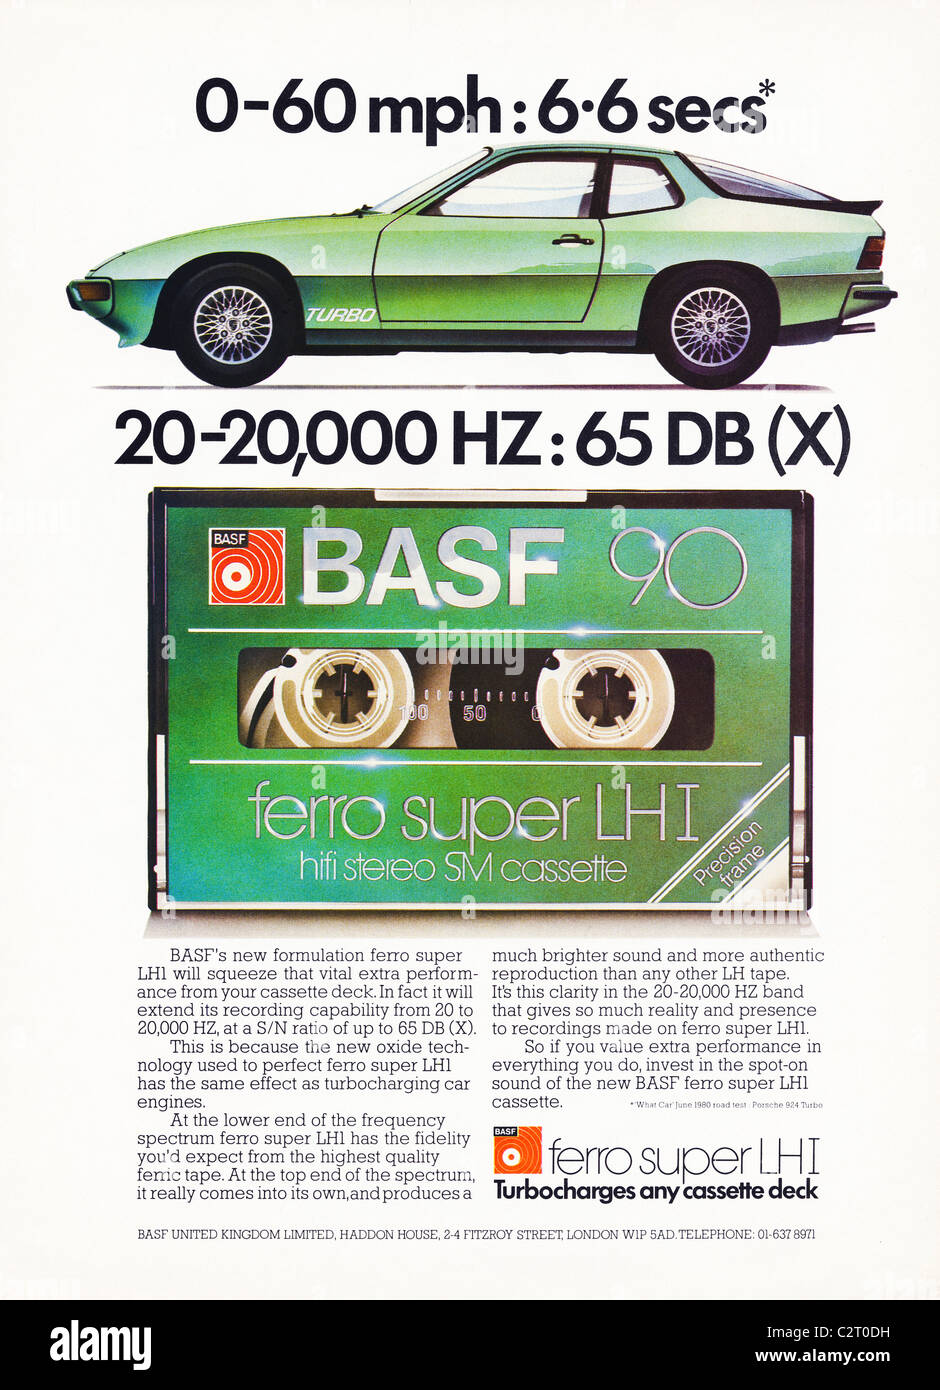 Publicidade Vintage Full-page-advertisement-for-basf-cassette-tapes-in-mens-magazine-circa-C2T0DH